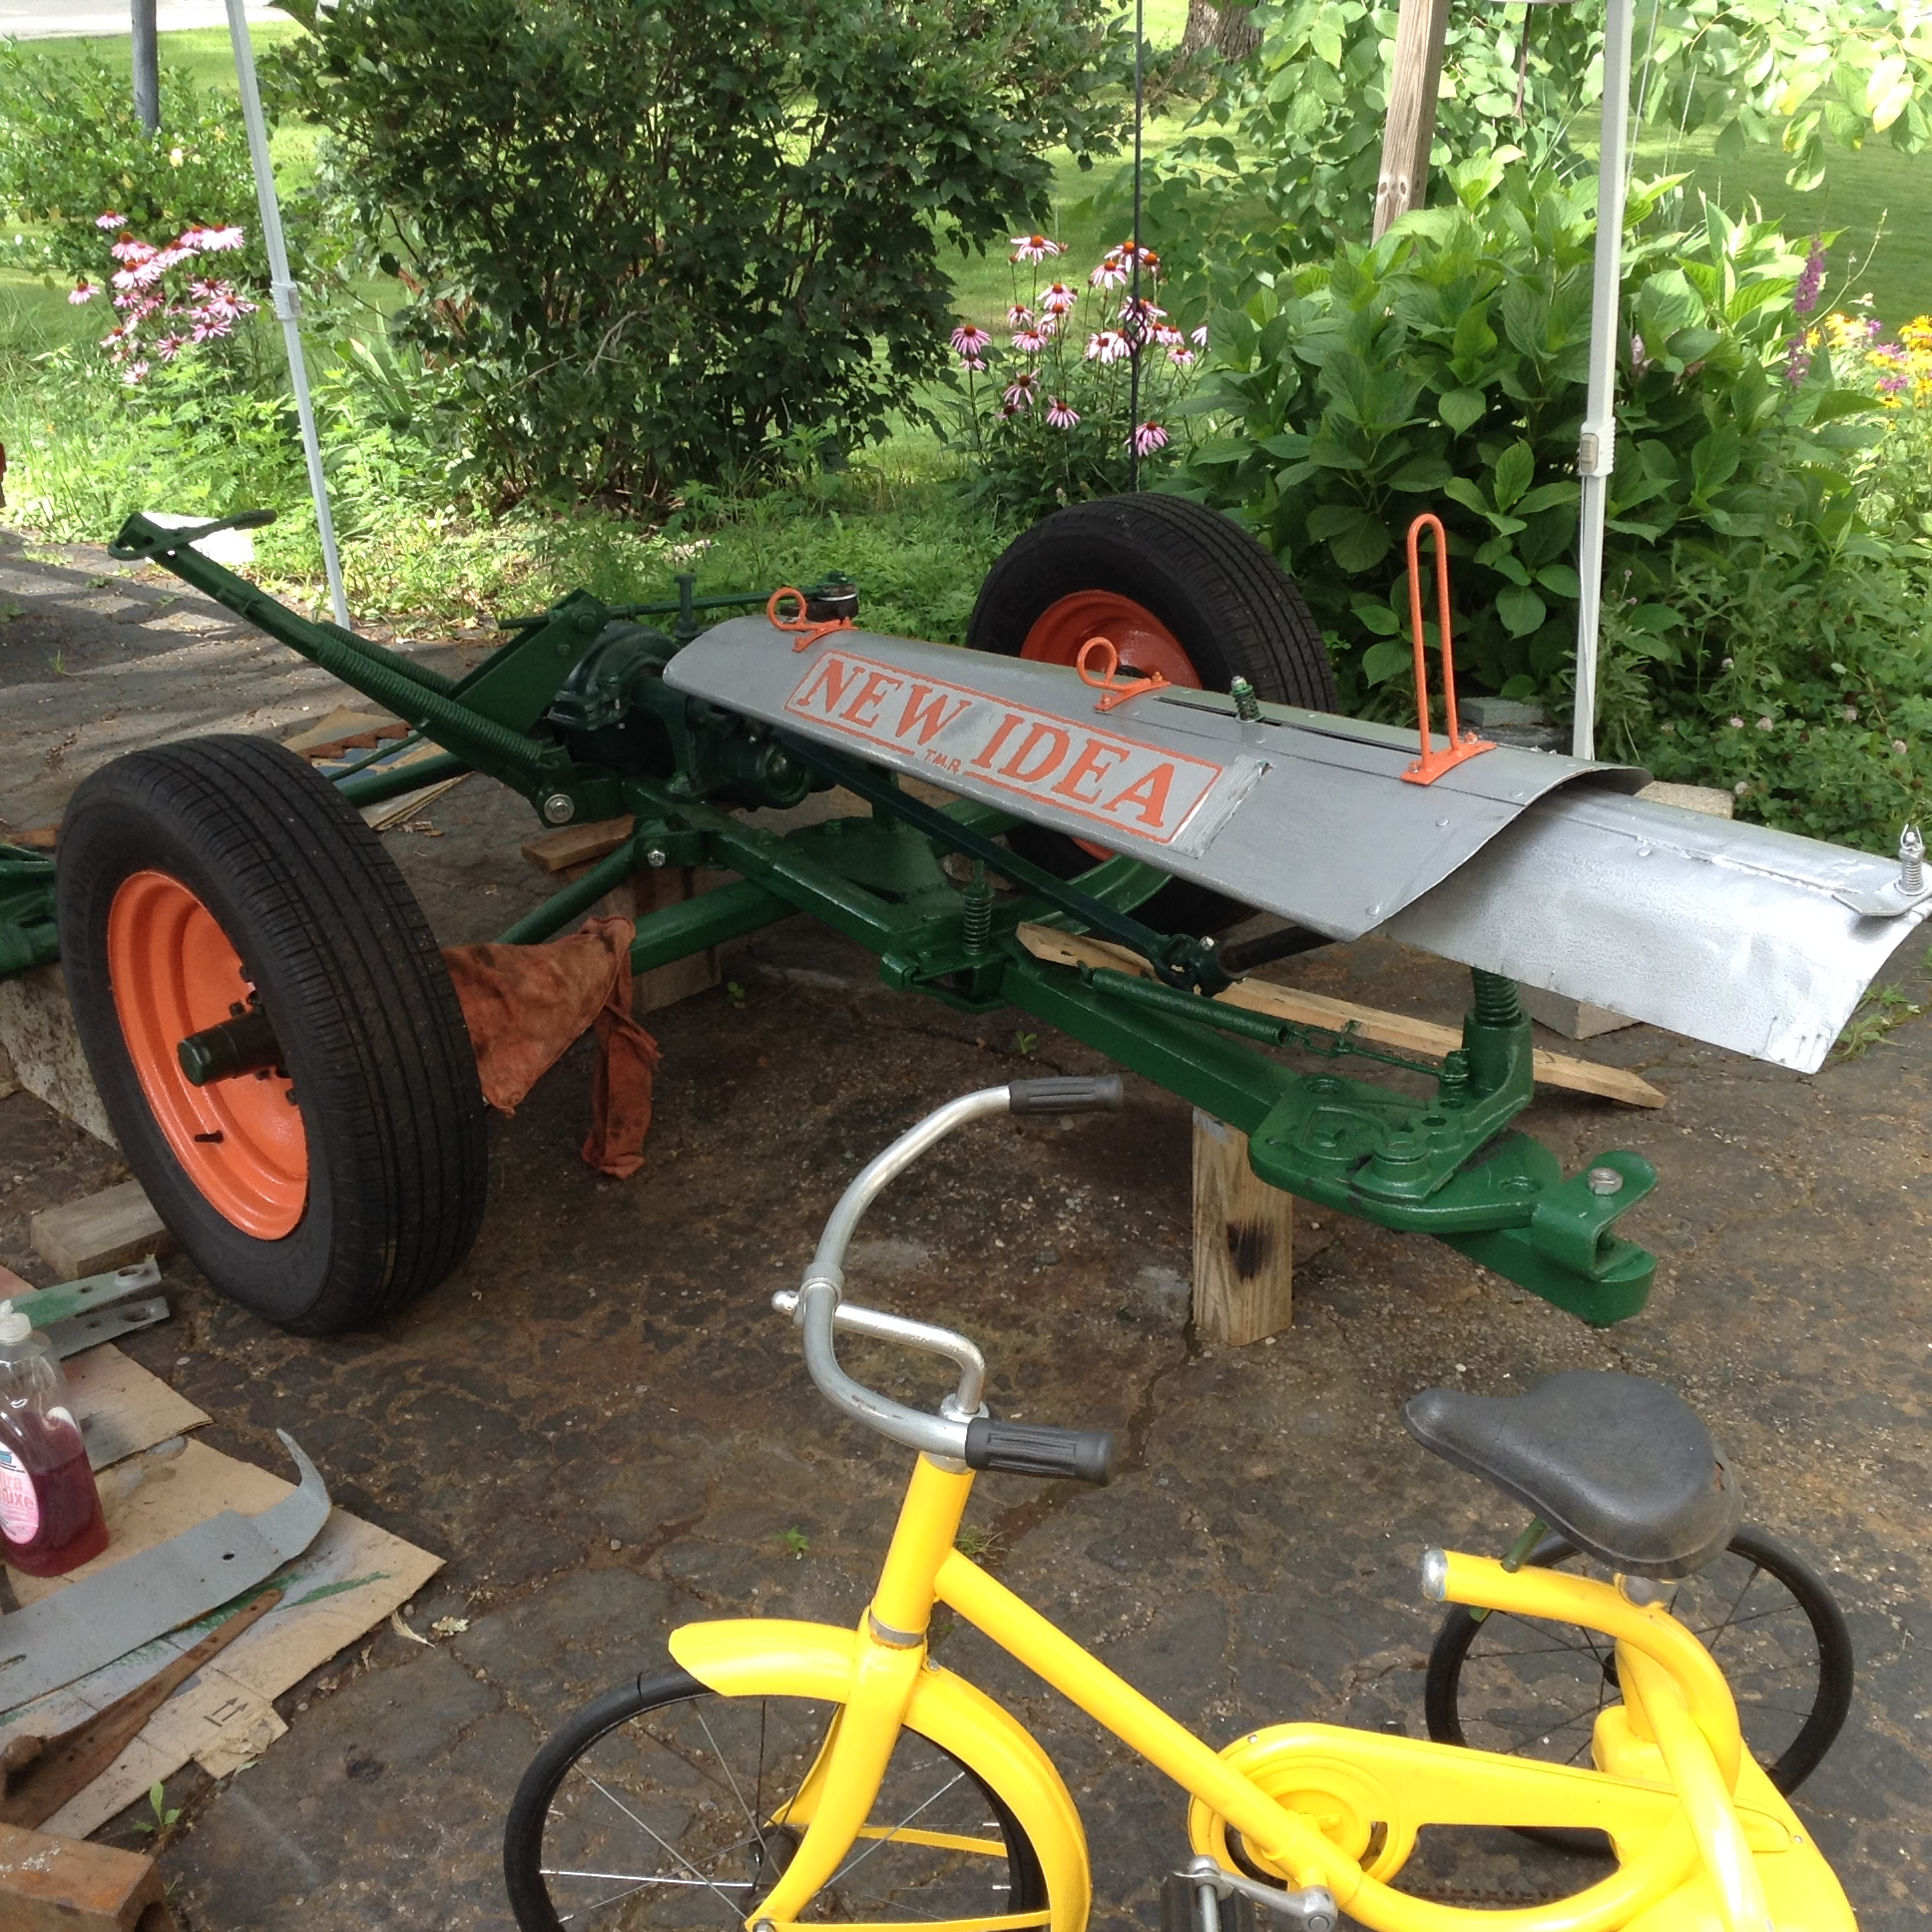 New Idea 30A Sickle Bar Mower - Projects, Builds, & Restorations